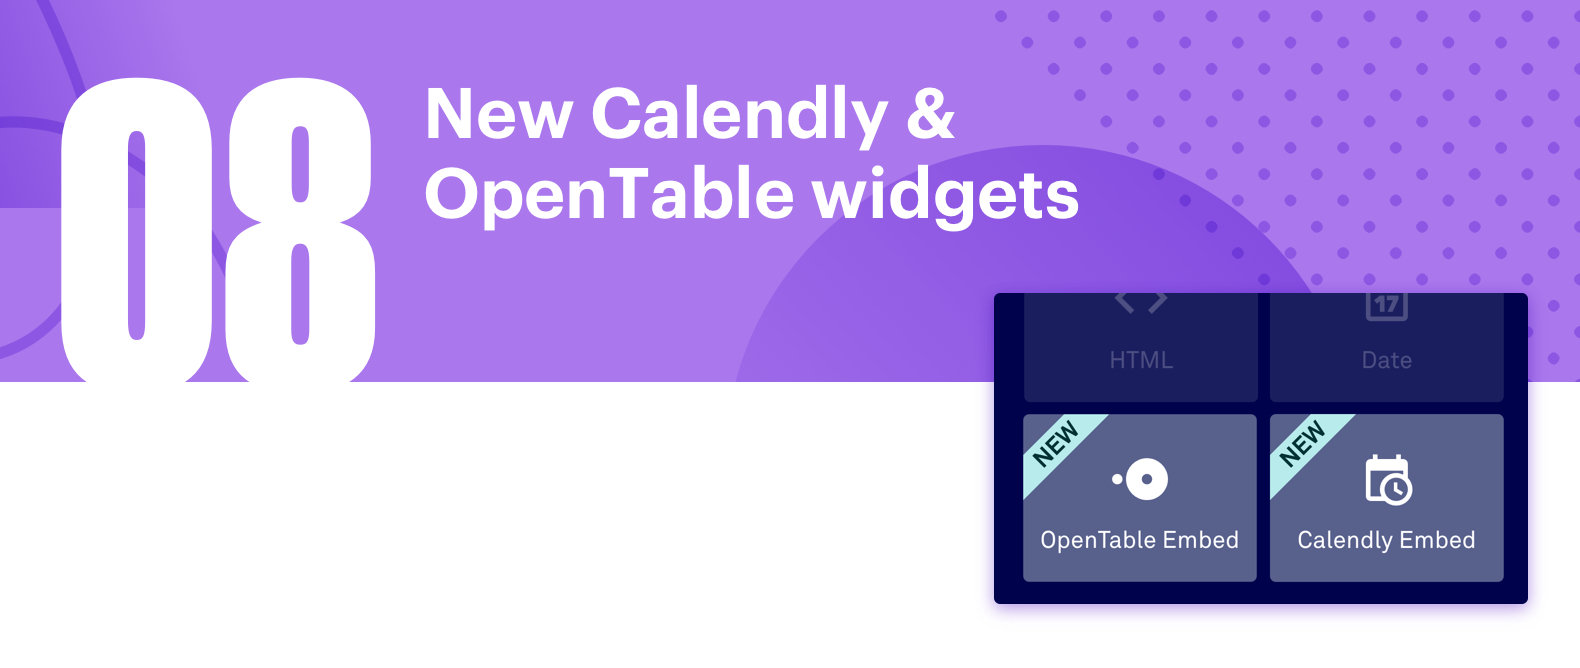 Leadpages launches New Calendly & OpenTable widgets